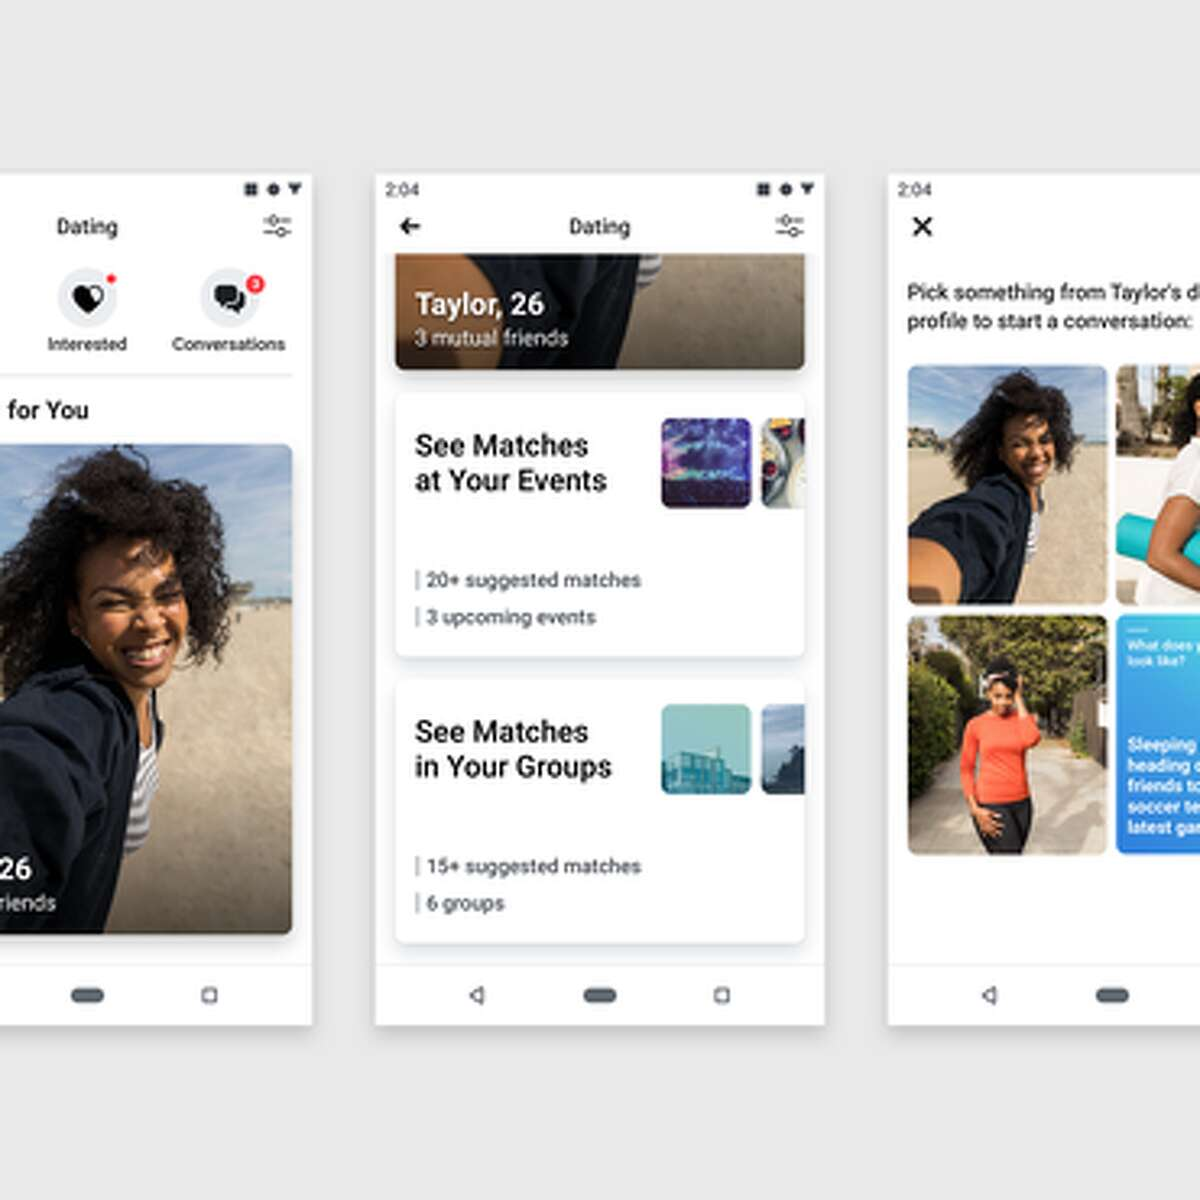 Facebook is introducing its dating feature to 14 new countries.